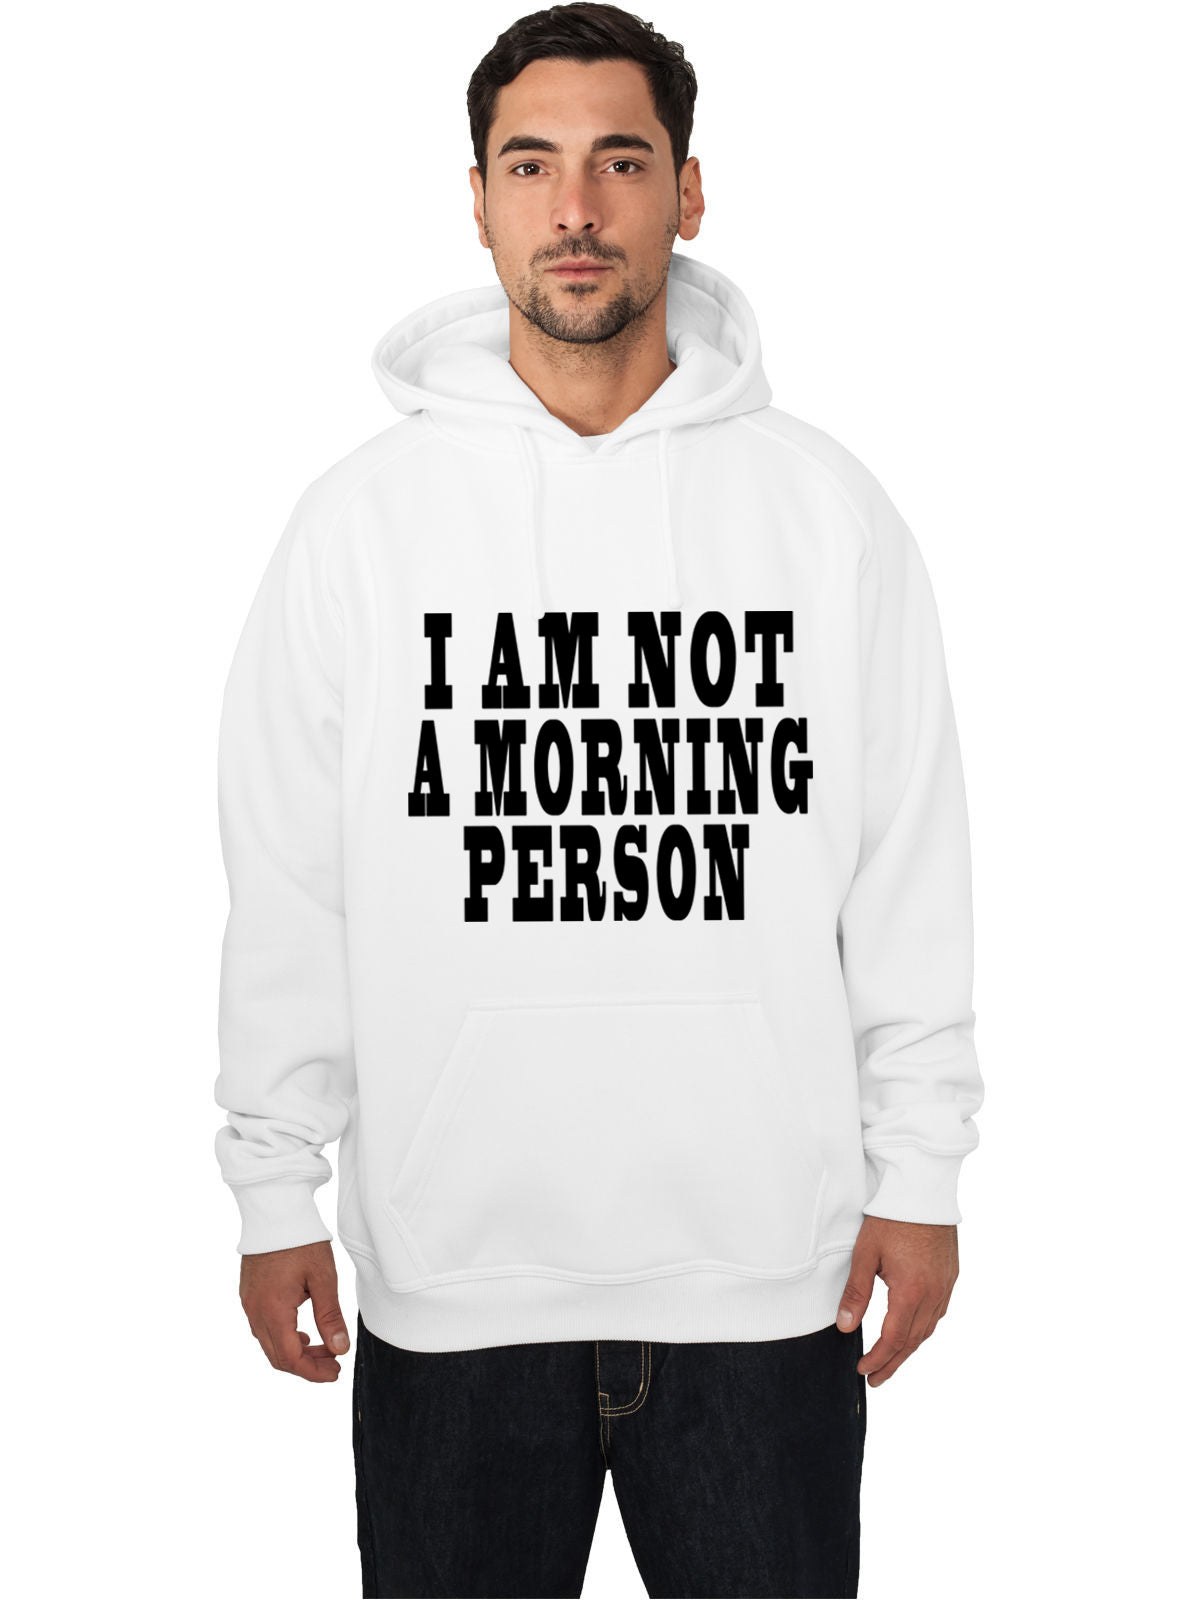 I Am Not a Morning Person Cara Delevingne Vogue Adult Hoodie